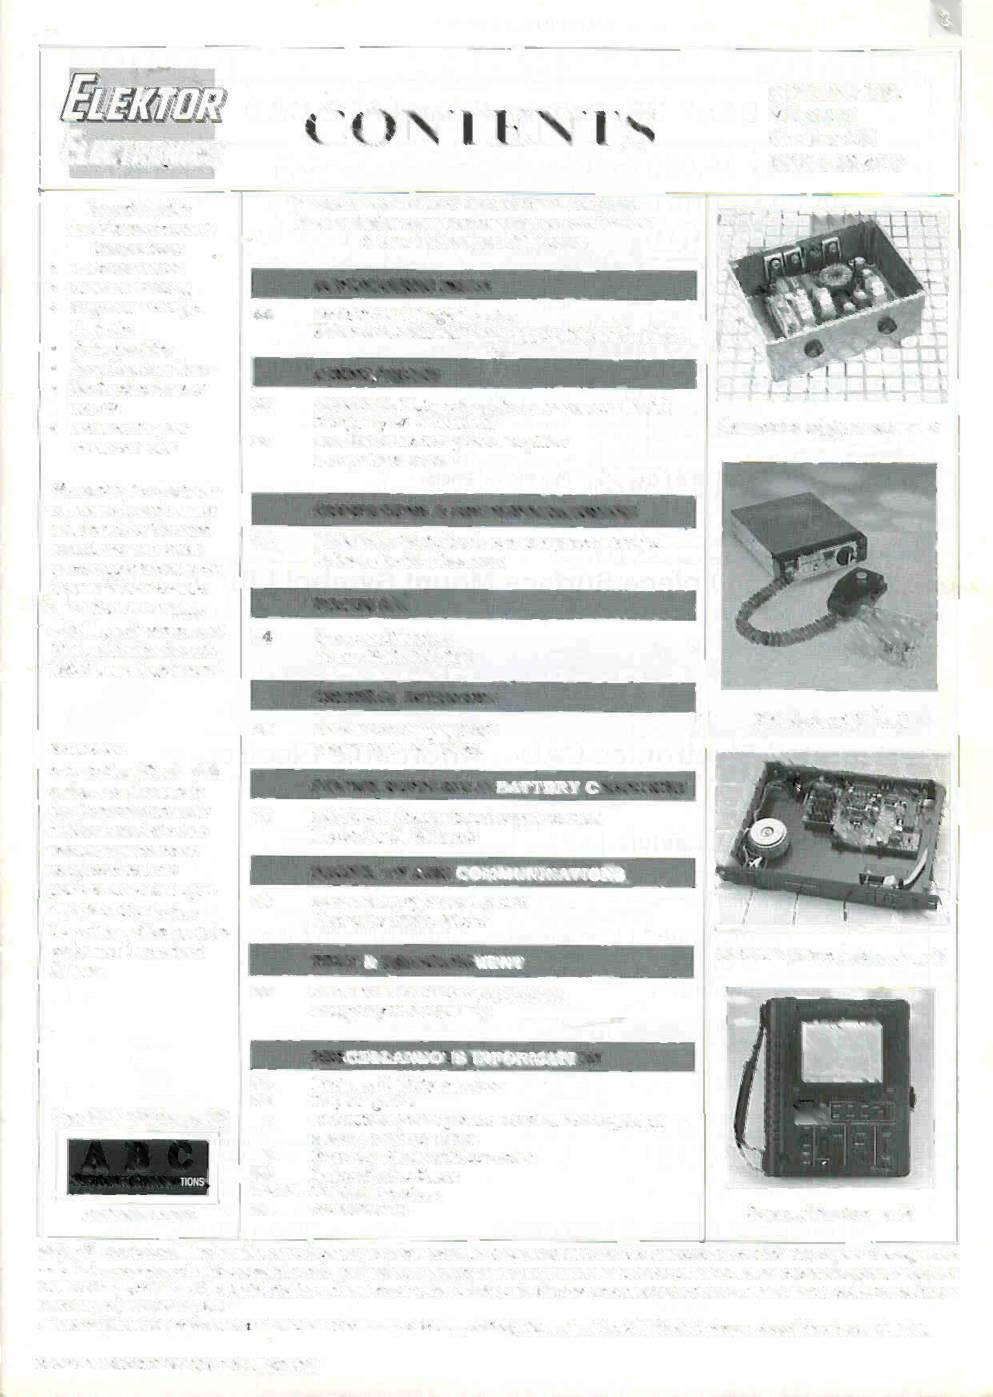 Audio Hi Fi Computers Microprocessors Design Ideas Radio Pic Projects With Ccs C Compiler Rc5 Remote Control Decoder Ktor November 1995 Contents Volume 21 Number 238 Siliri 51 Gila